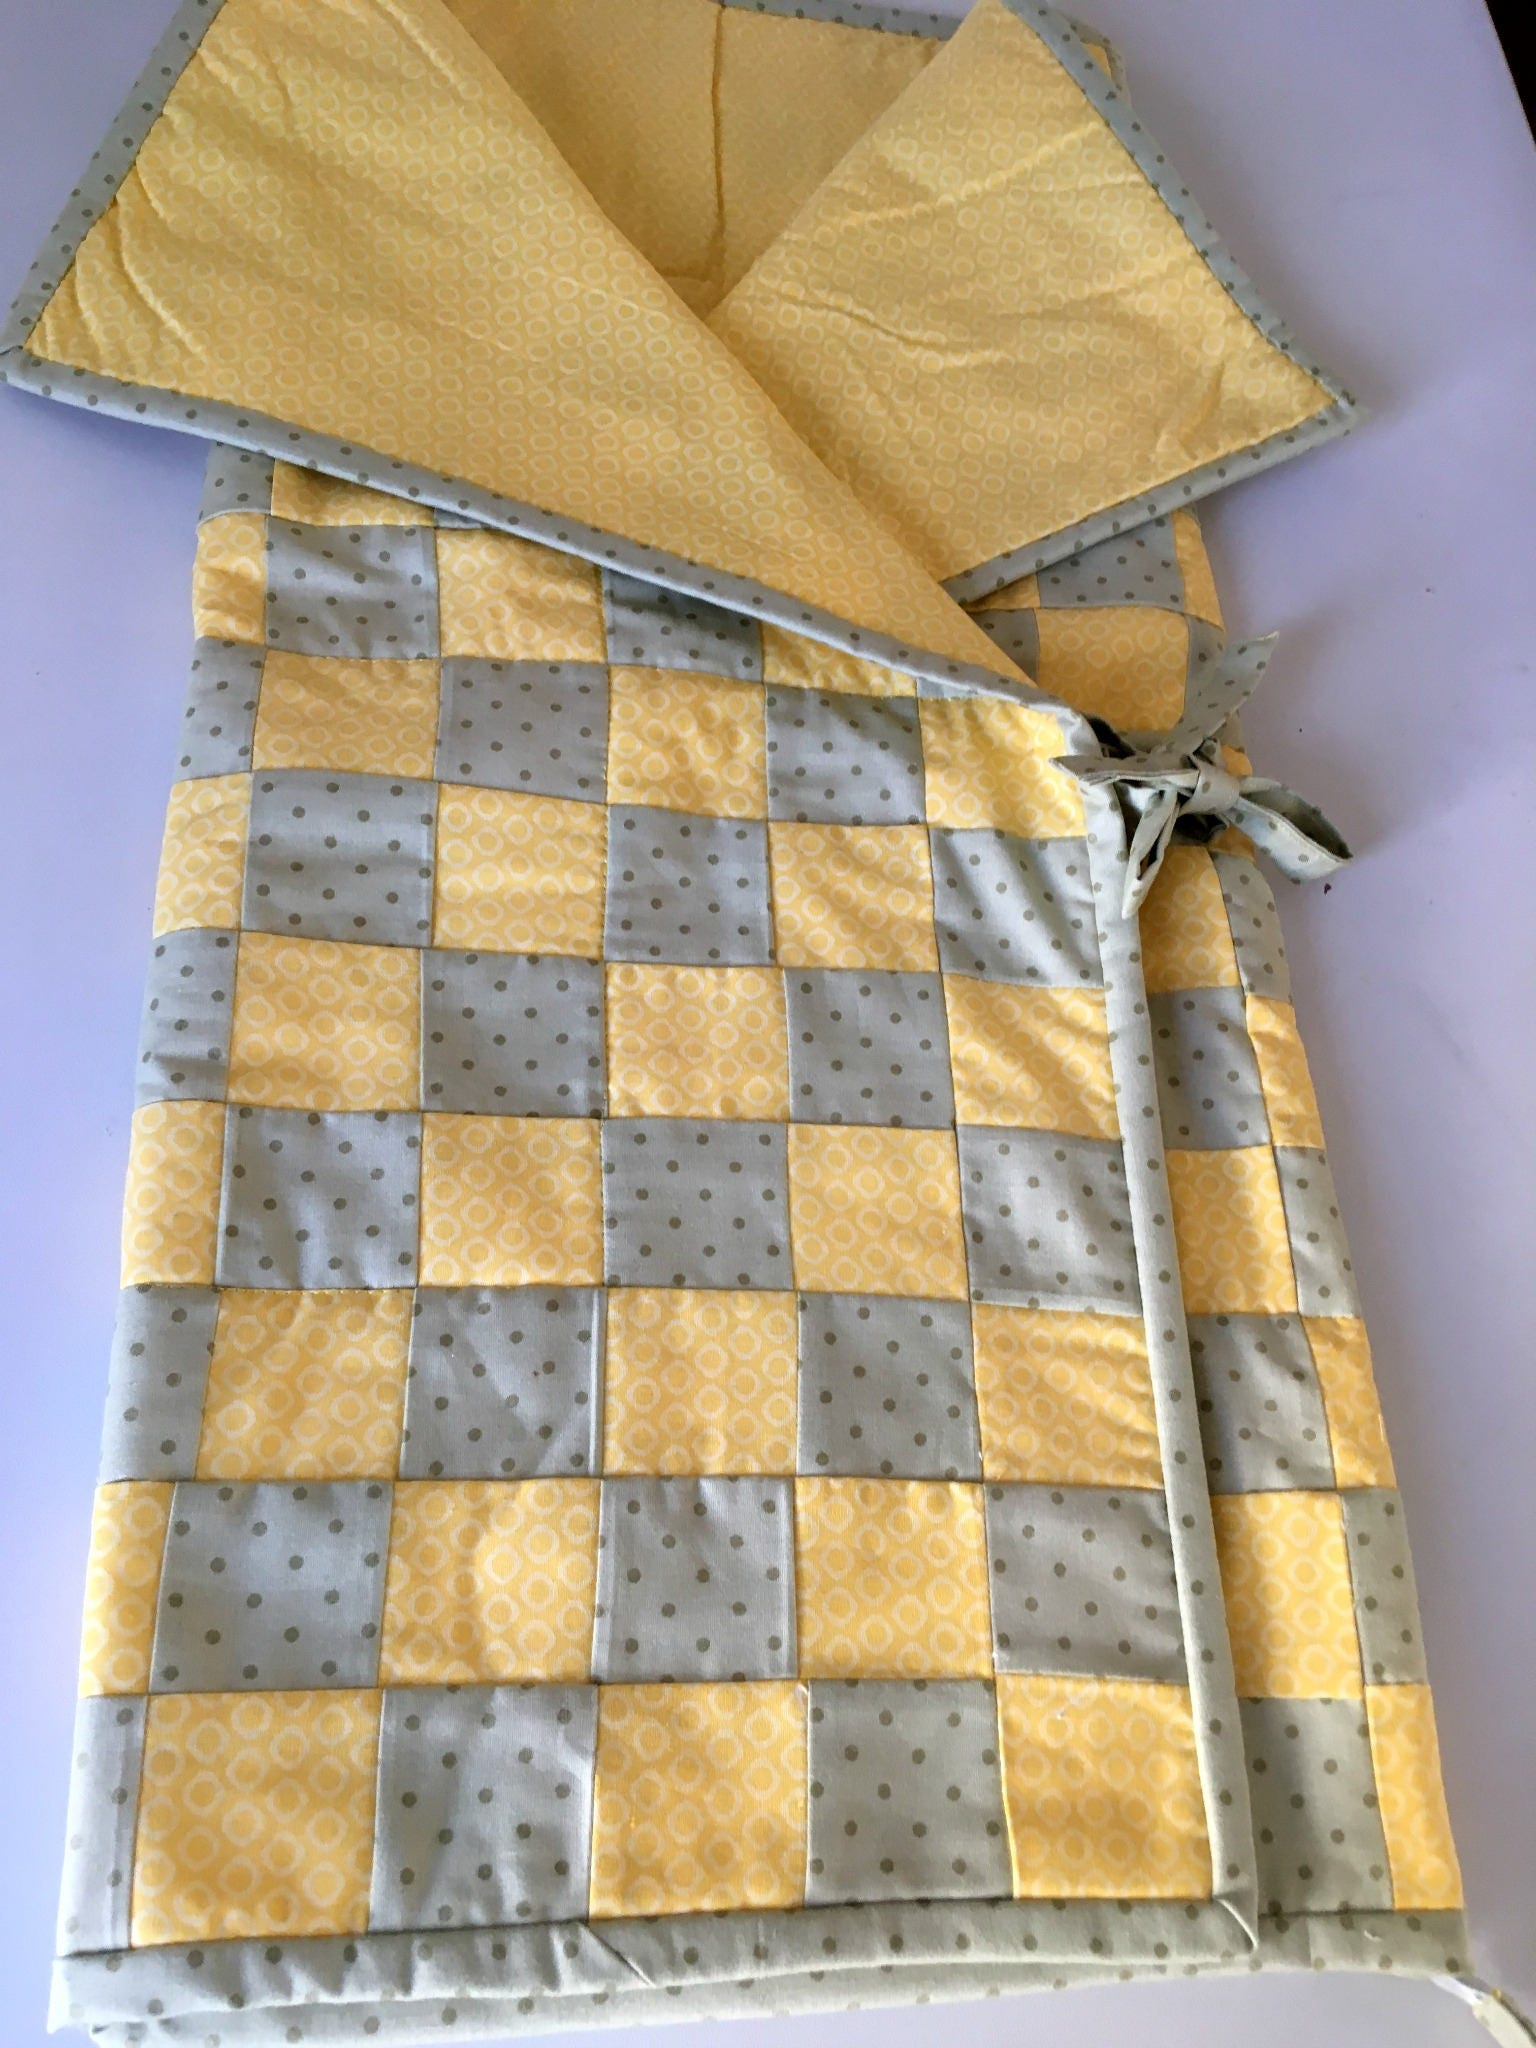 Baby Bunting Bag Bunting or Blanket Quilted Baby Bunting : quilted baby bunting - Adamdwight.com